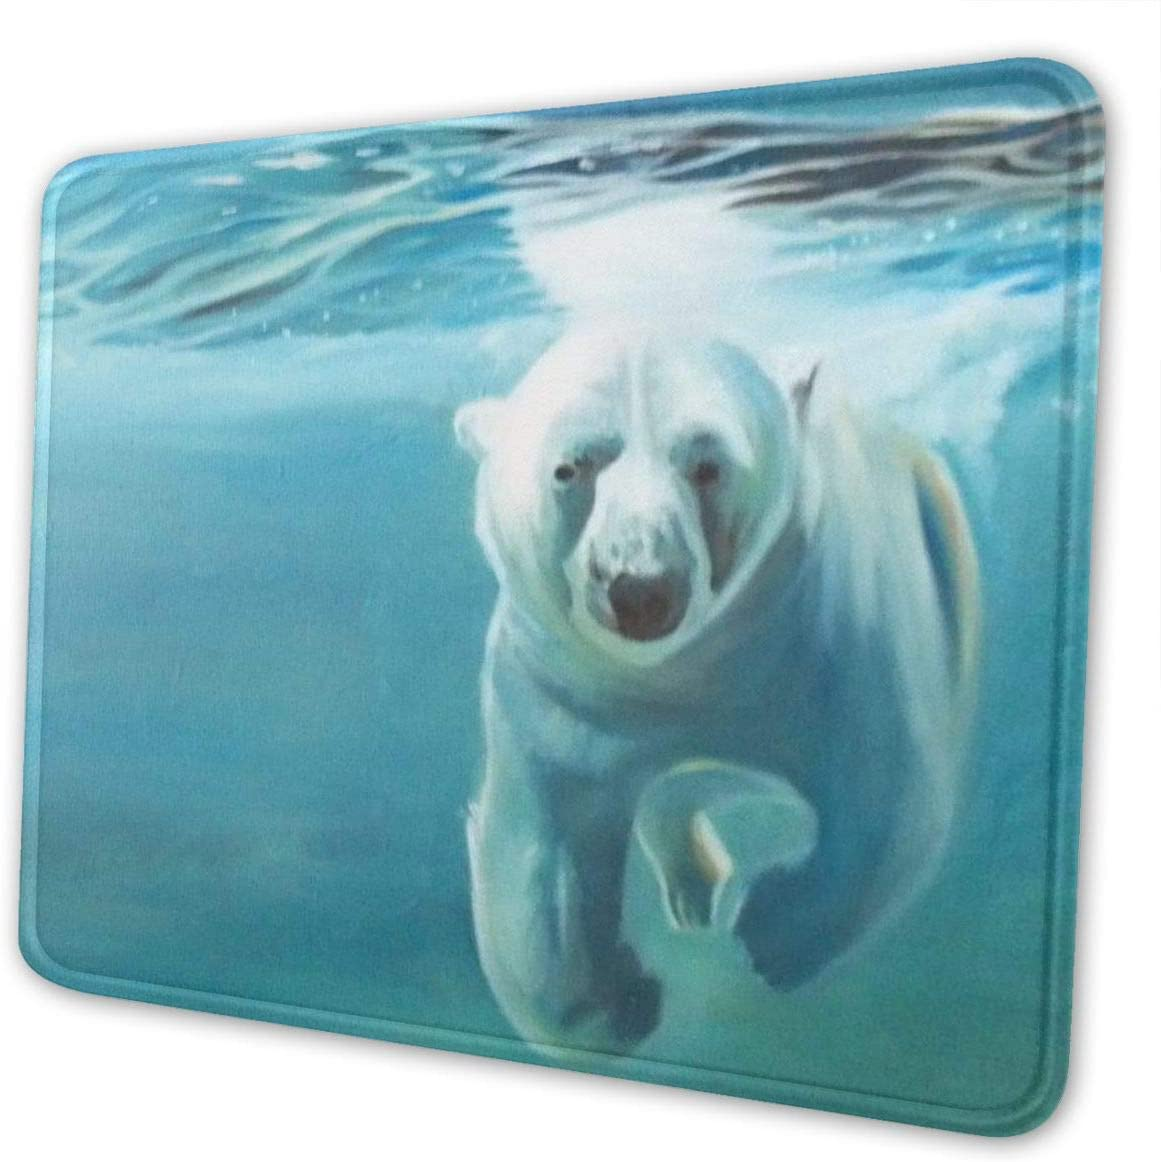 Mouse Pad Personality Polar Bear in The Water Pattern Mousepad Non-Slip Rubber Gaming Mouse Pad Rectangle Mouse Pads for Computers Laptop 10x12inch